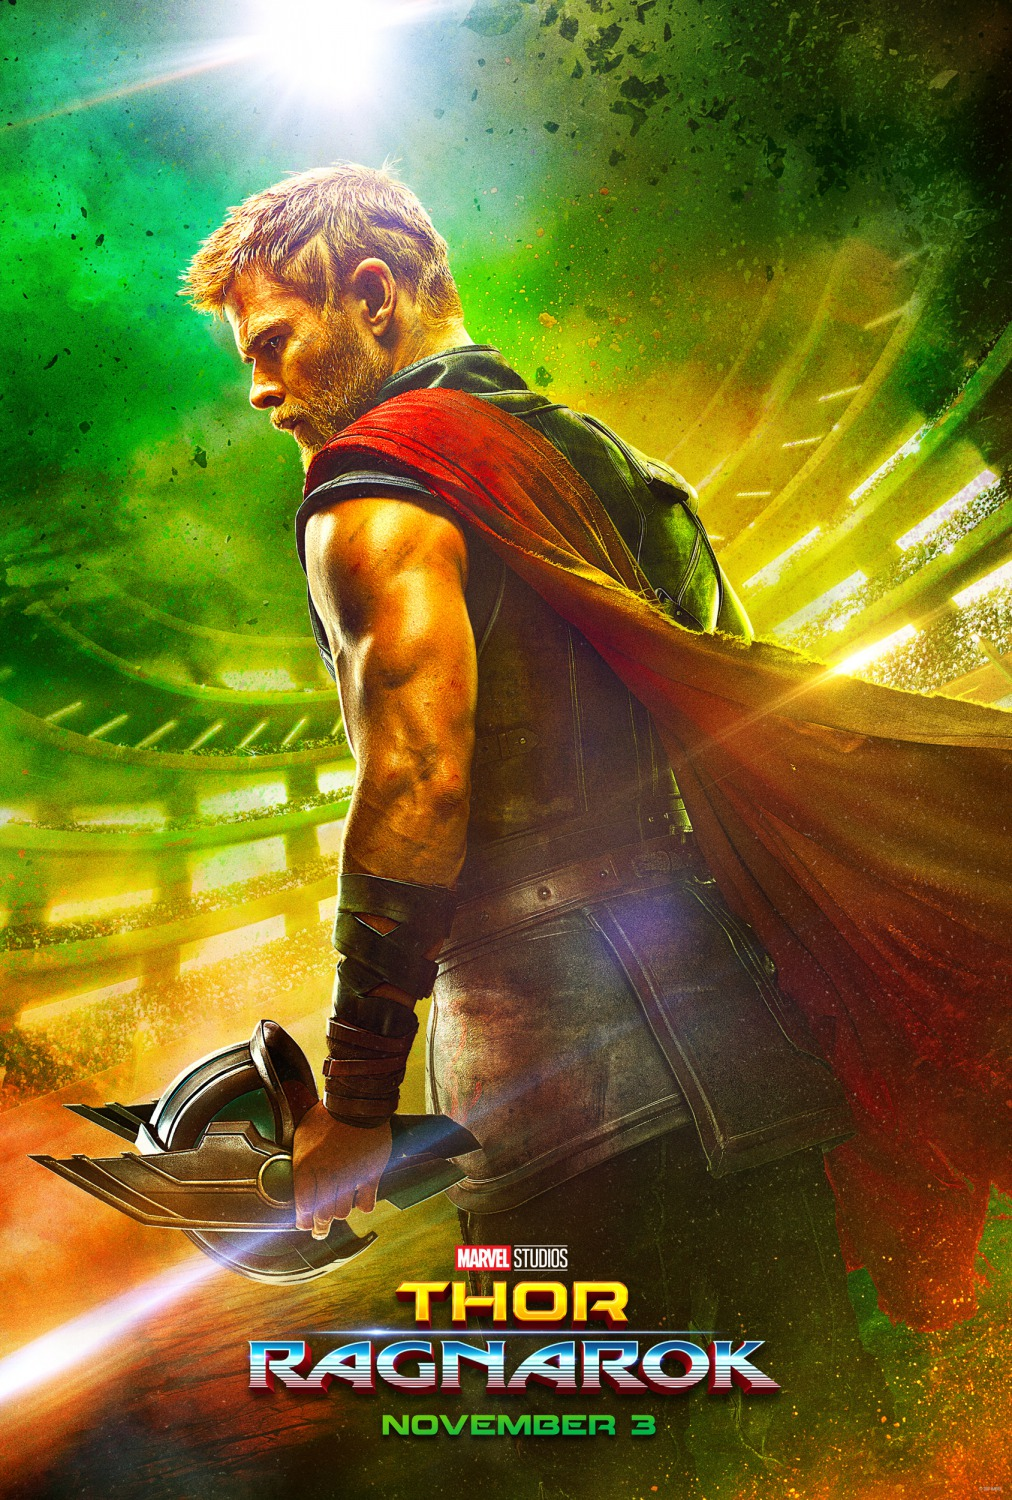 How To Eat Fried Worms Trailer: Marvel's Thor Ragnarok Teaser One Sheet  Movie Poster